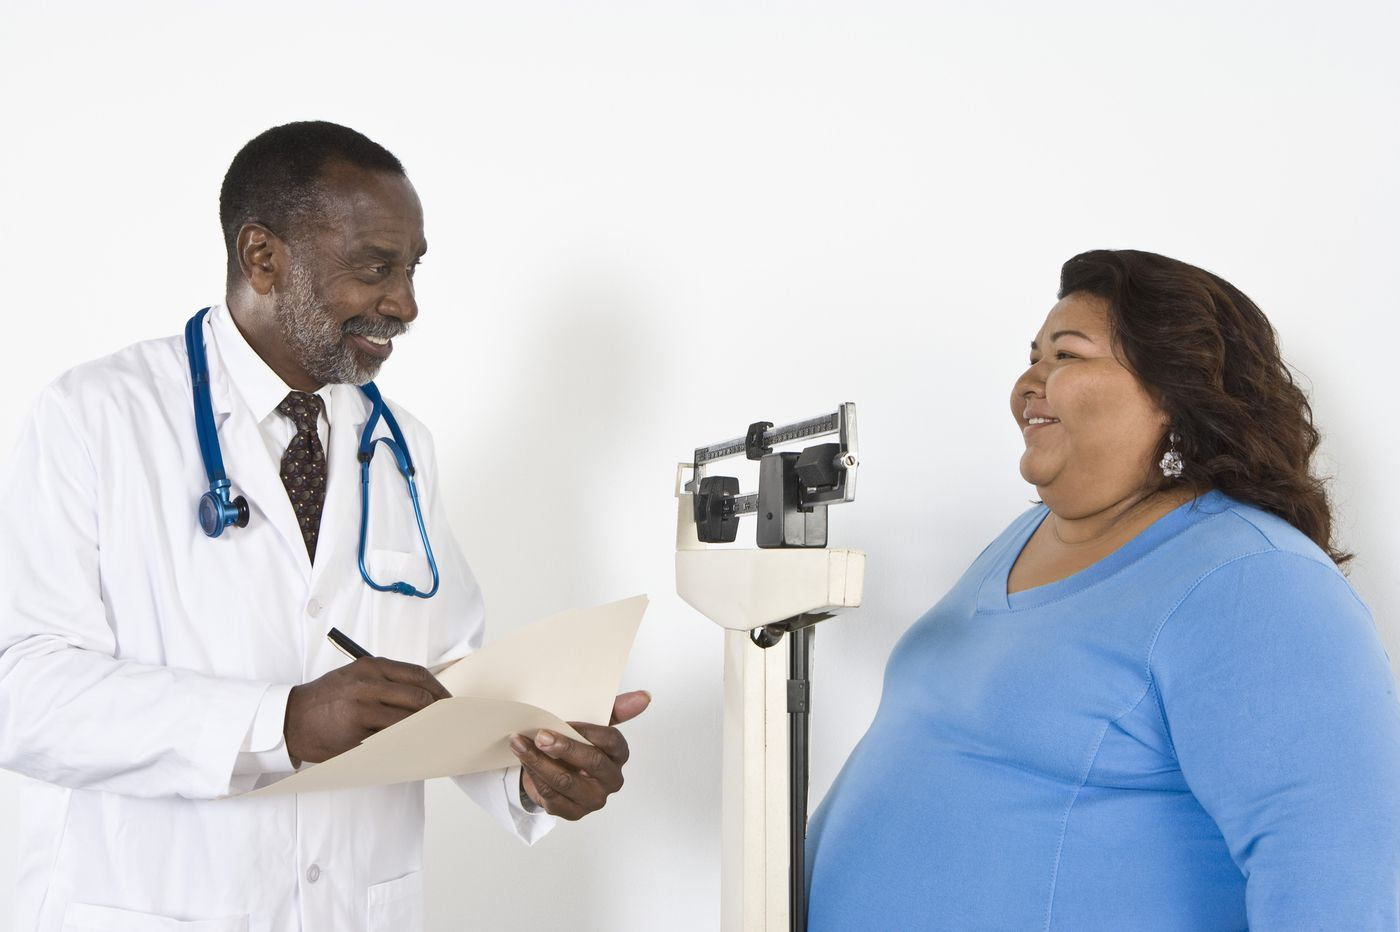 Obesity-related cancer rates are rising in middle-aged Americans but falling in seniors. What's going on?